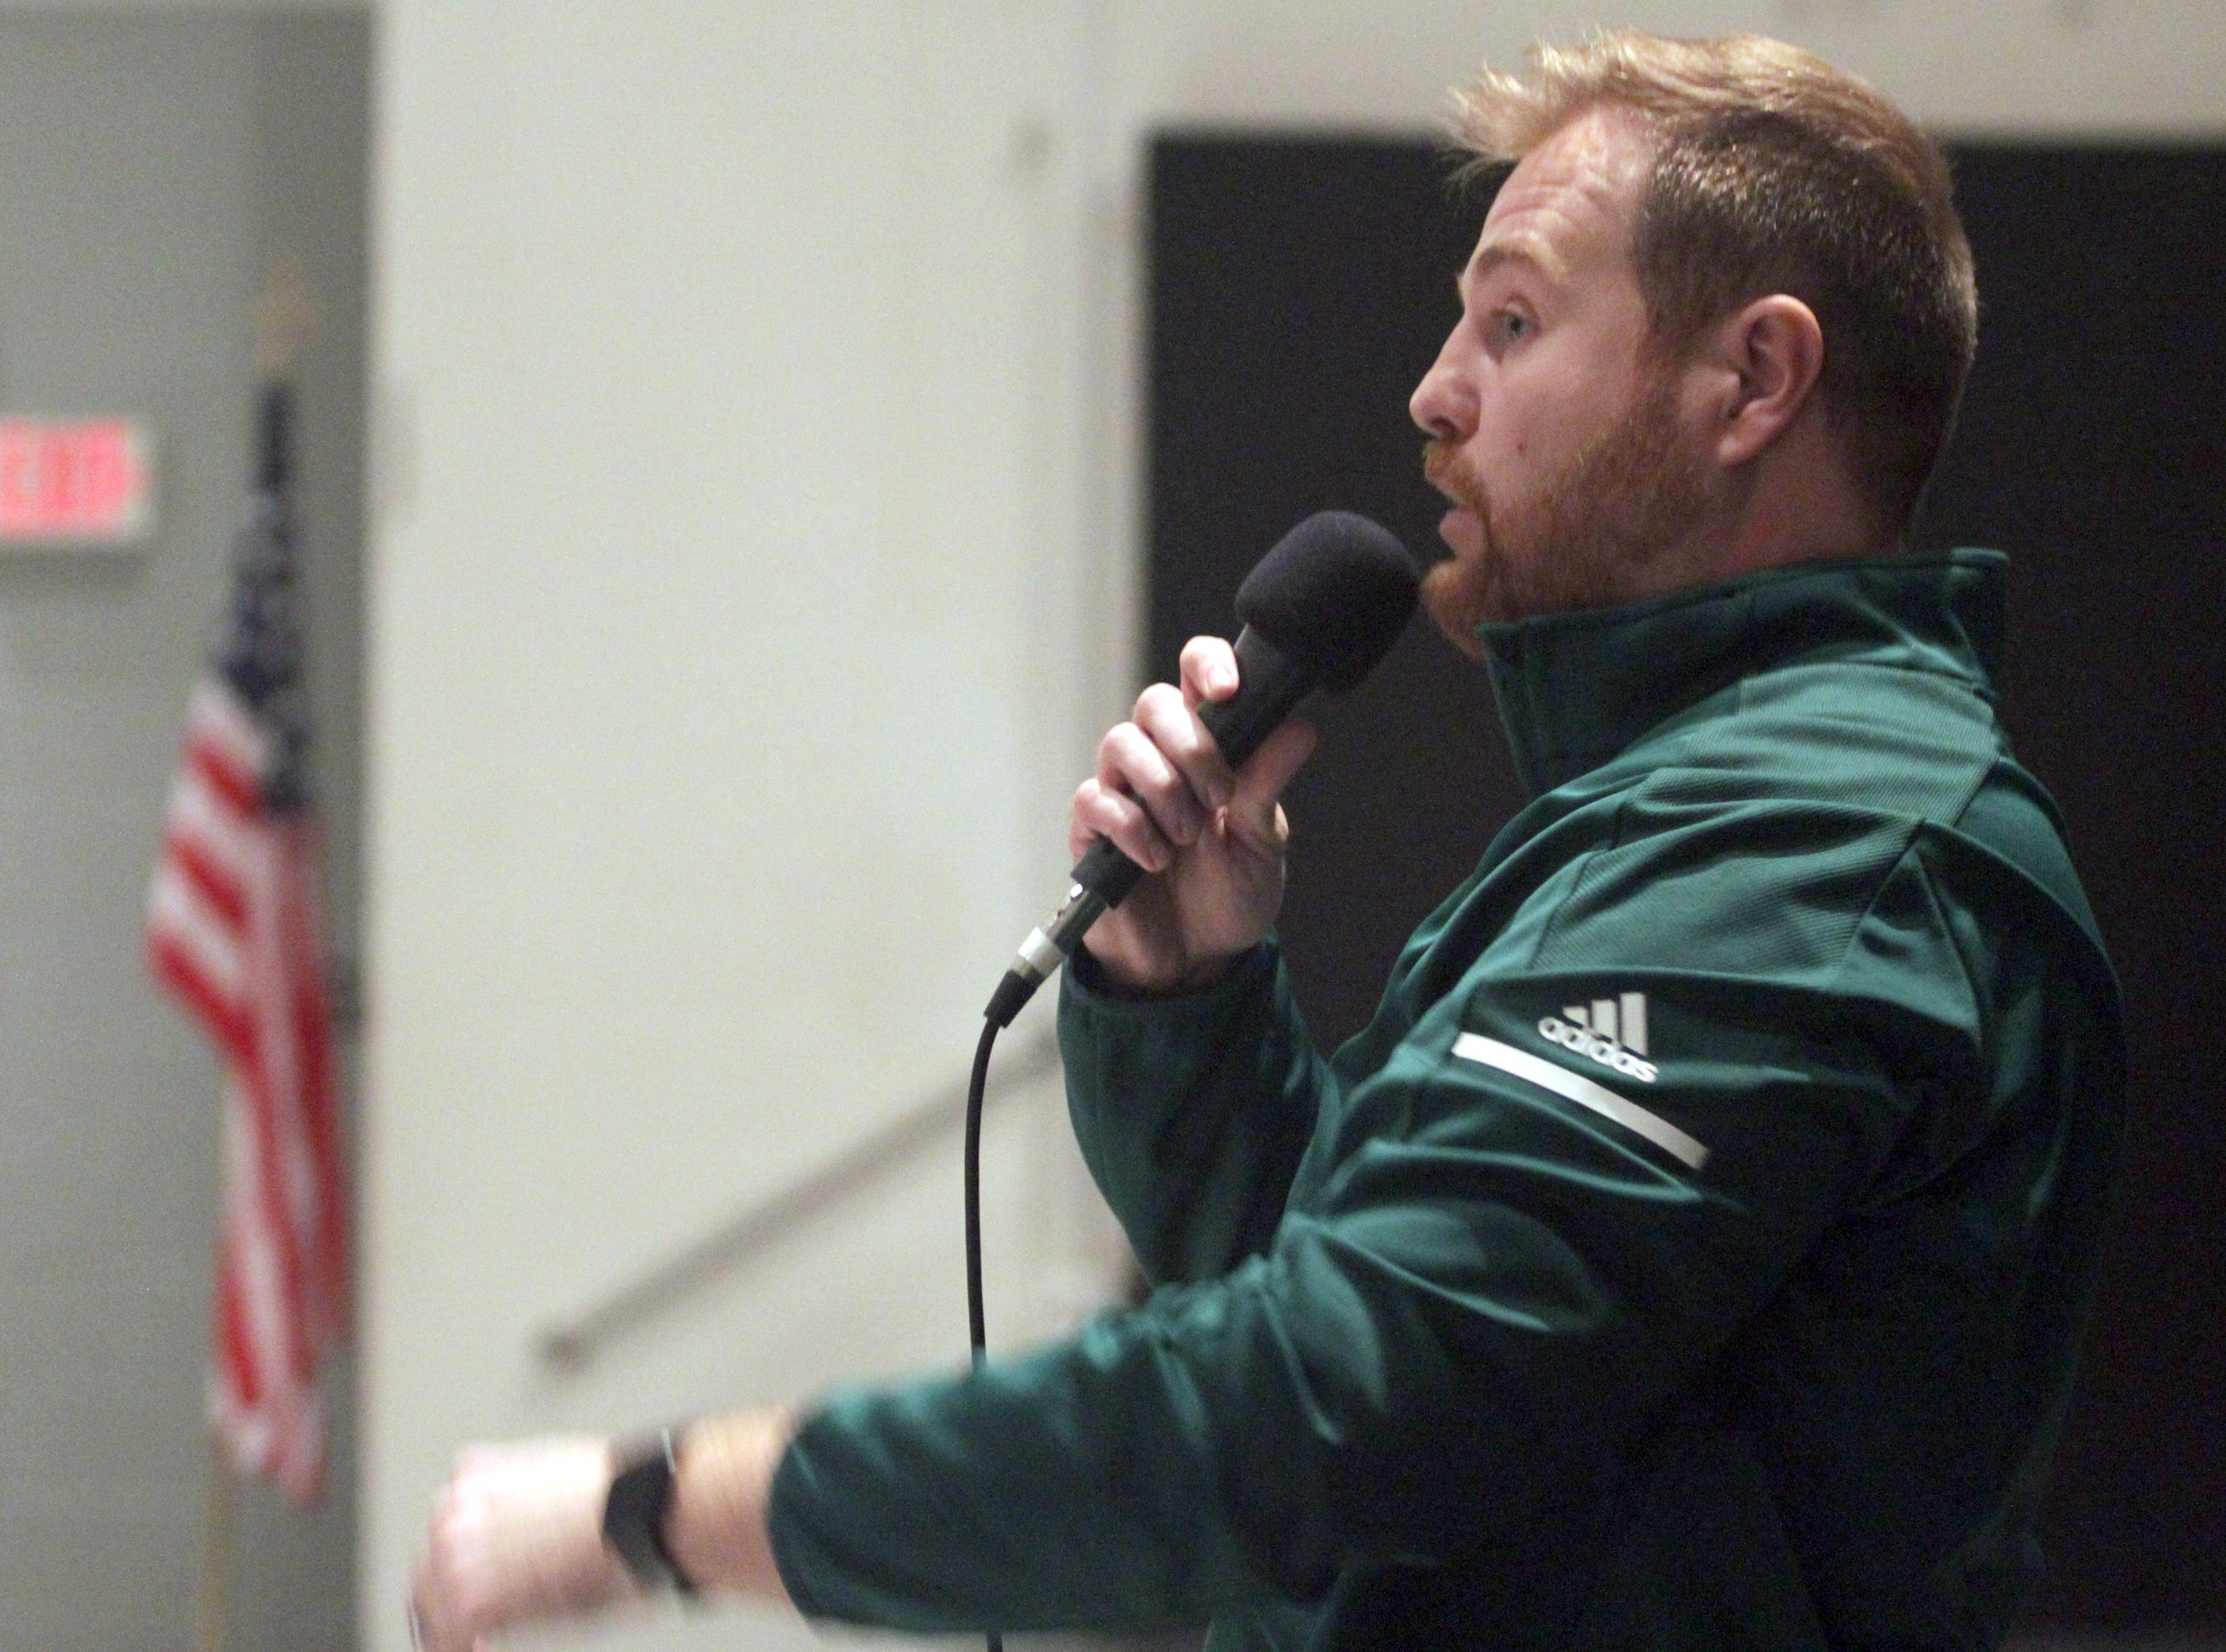 New Gallatin football coach Chad Watson talks about his plans for his team at Gallatin High School on Tuesday, January 8, 2019.